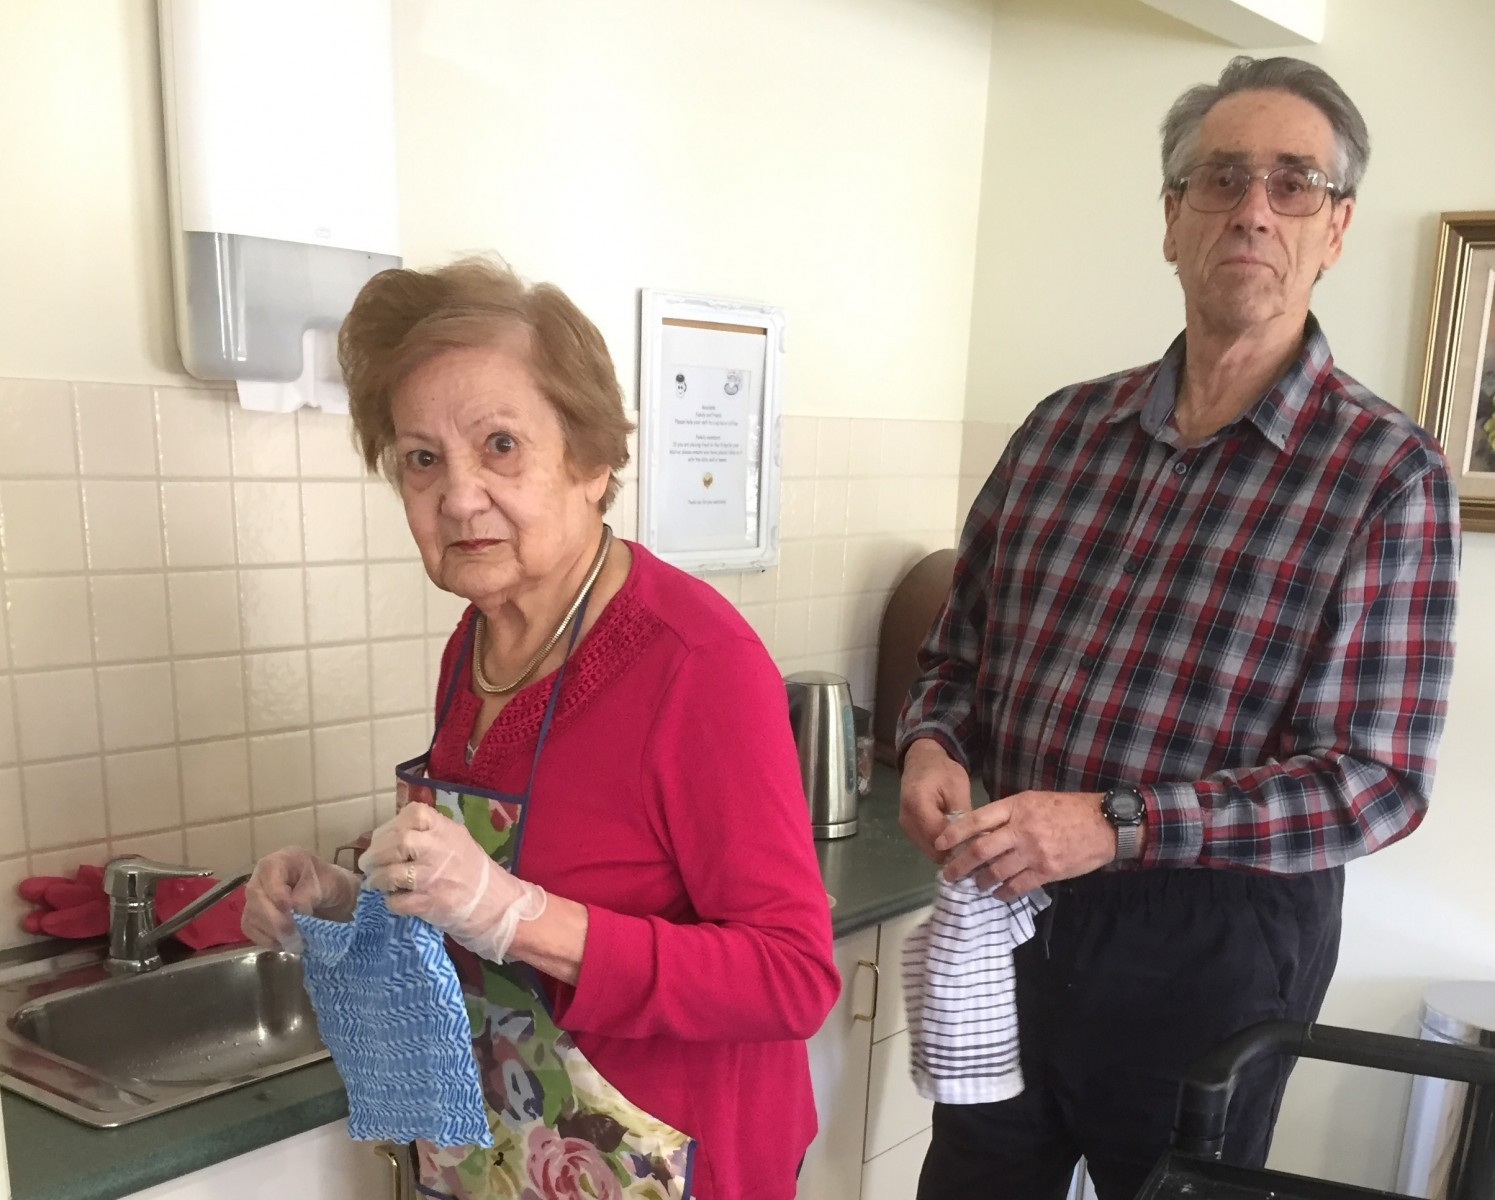 People with dementia engage in activity that is meaningful to them in different ways. Thelma and Barry enjoy washing and drying dishes.